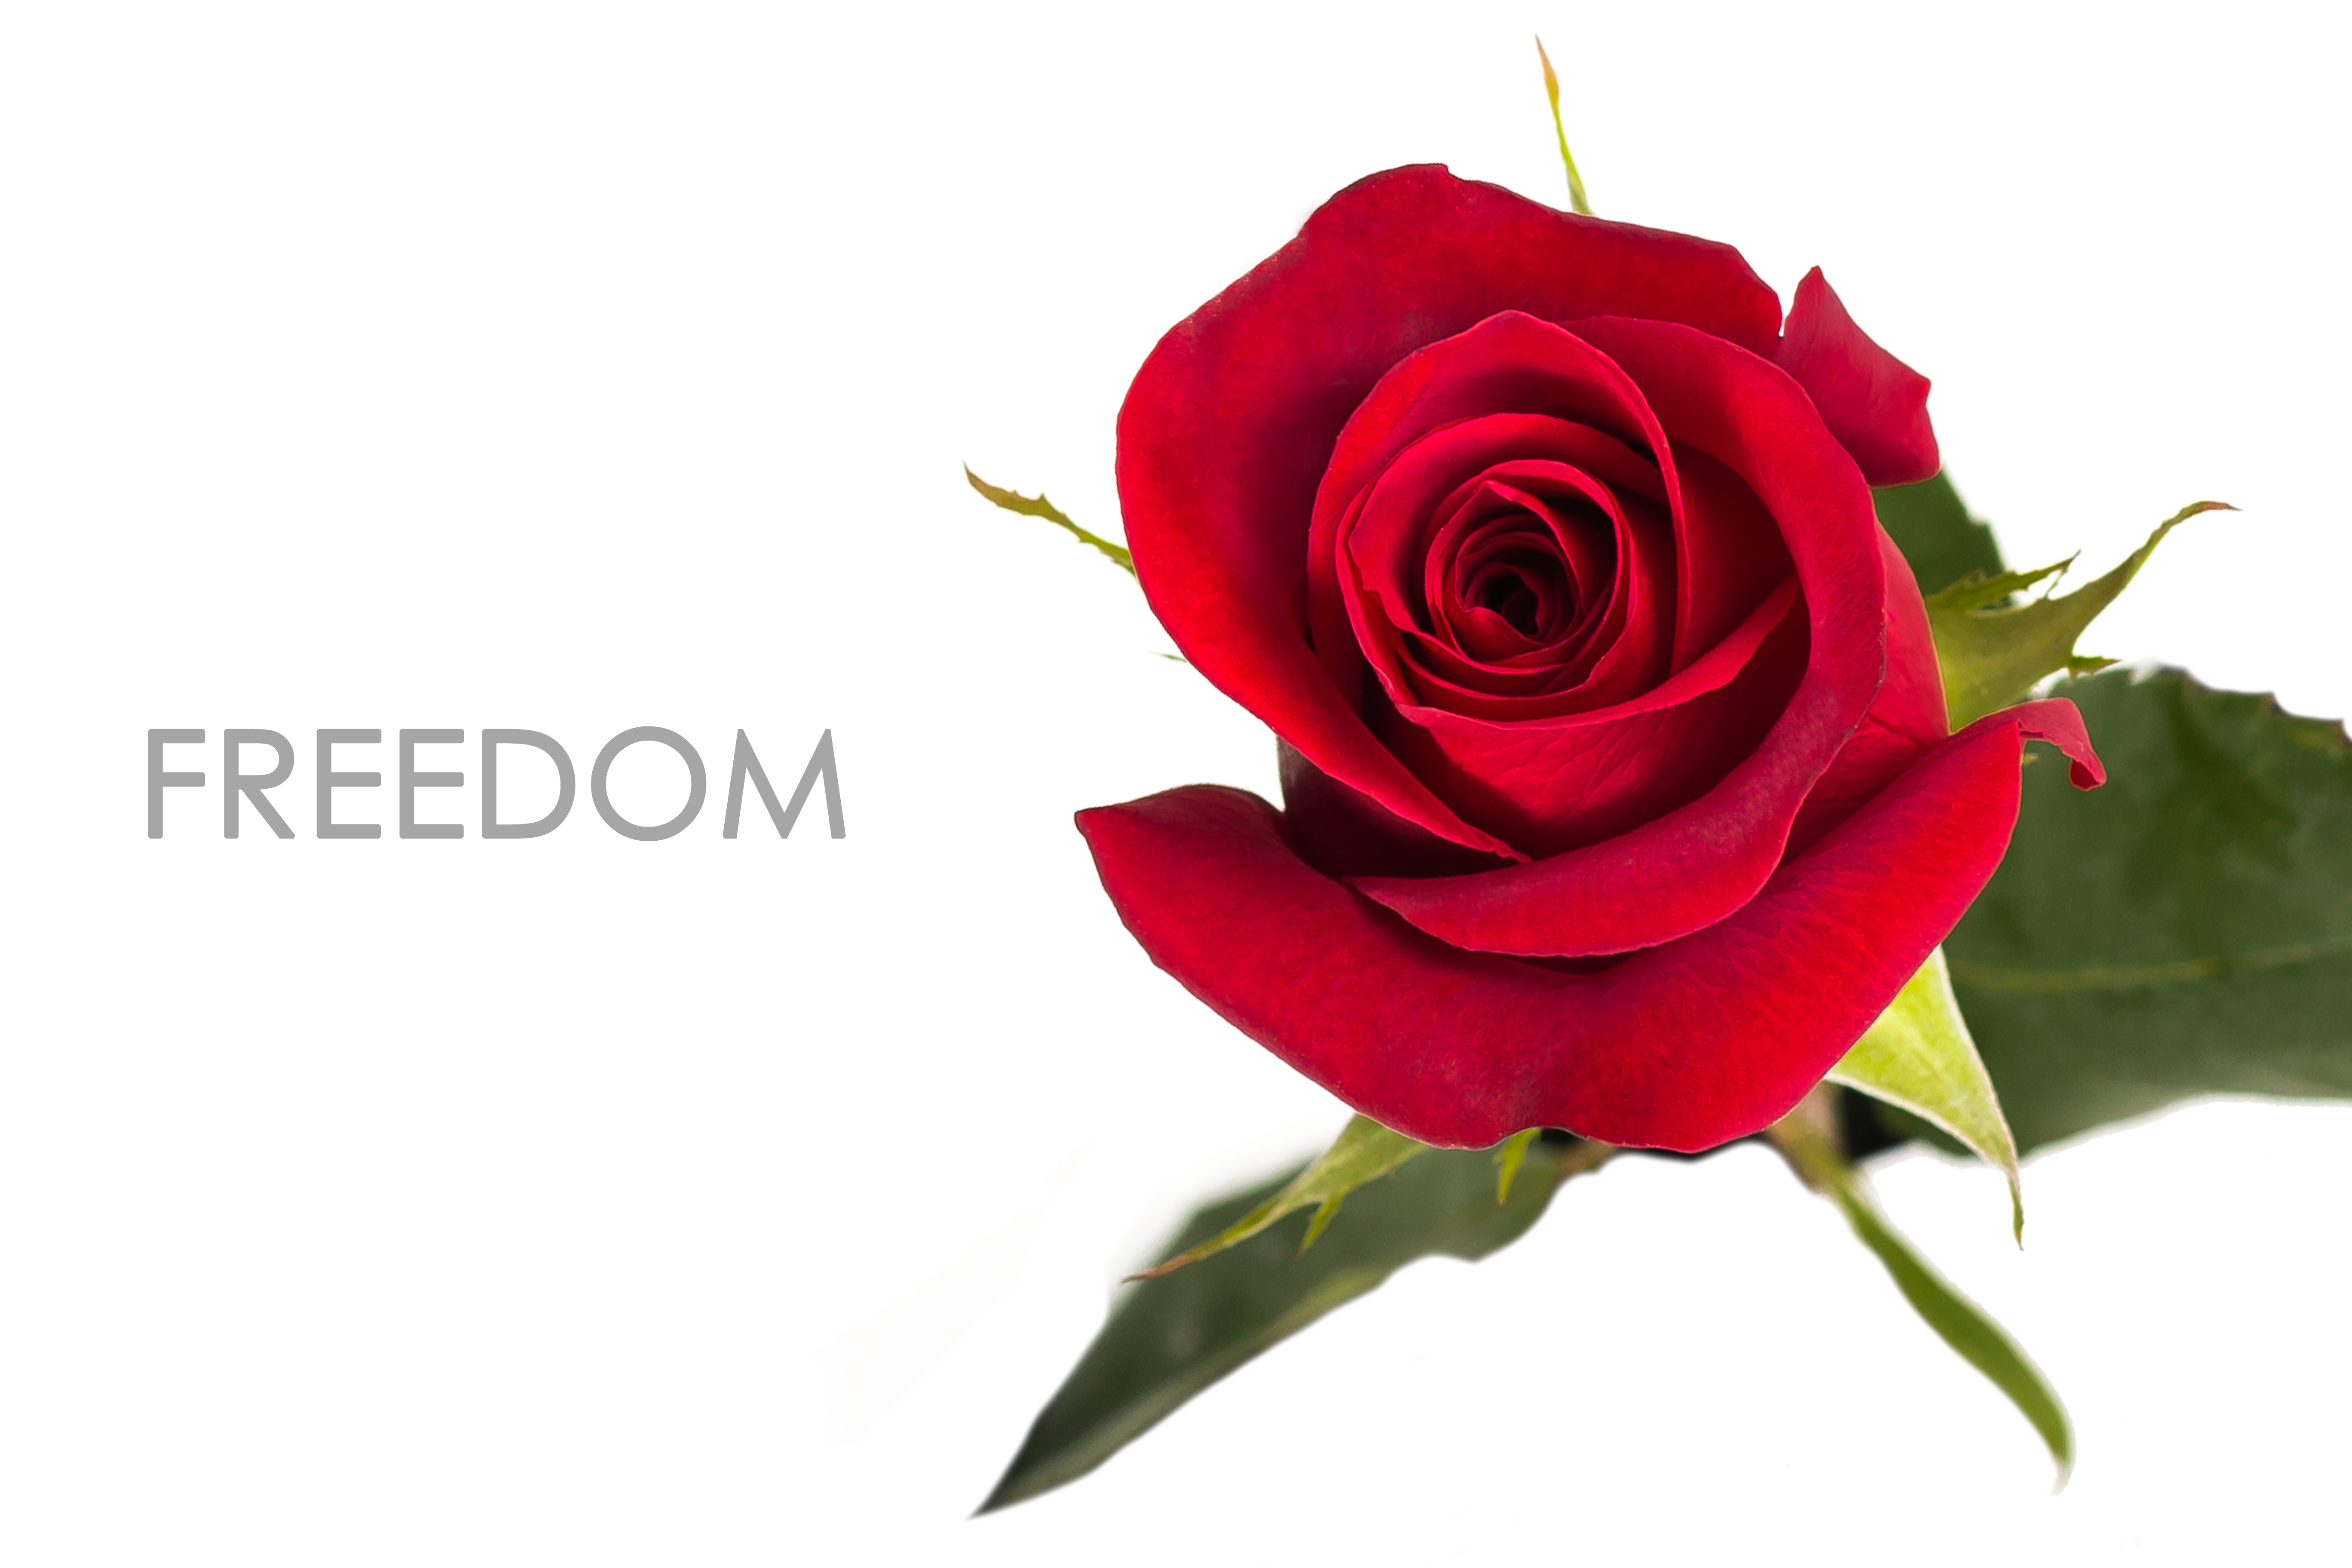 FREEDOM-UNIDAD-CAPTION